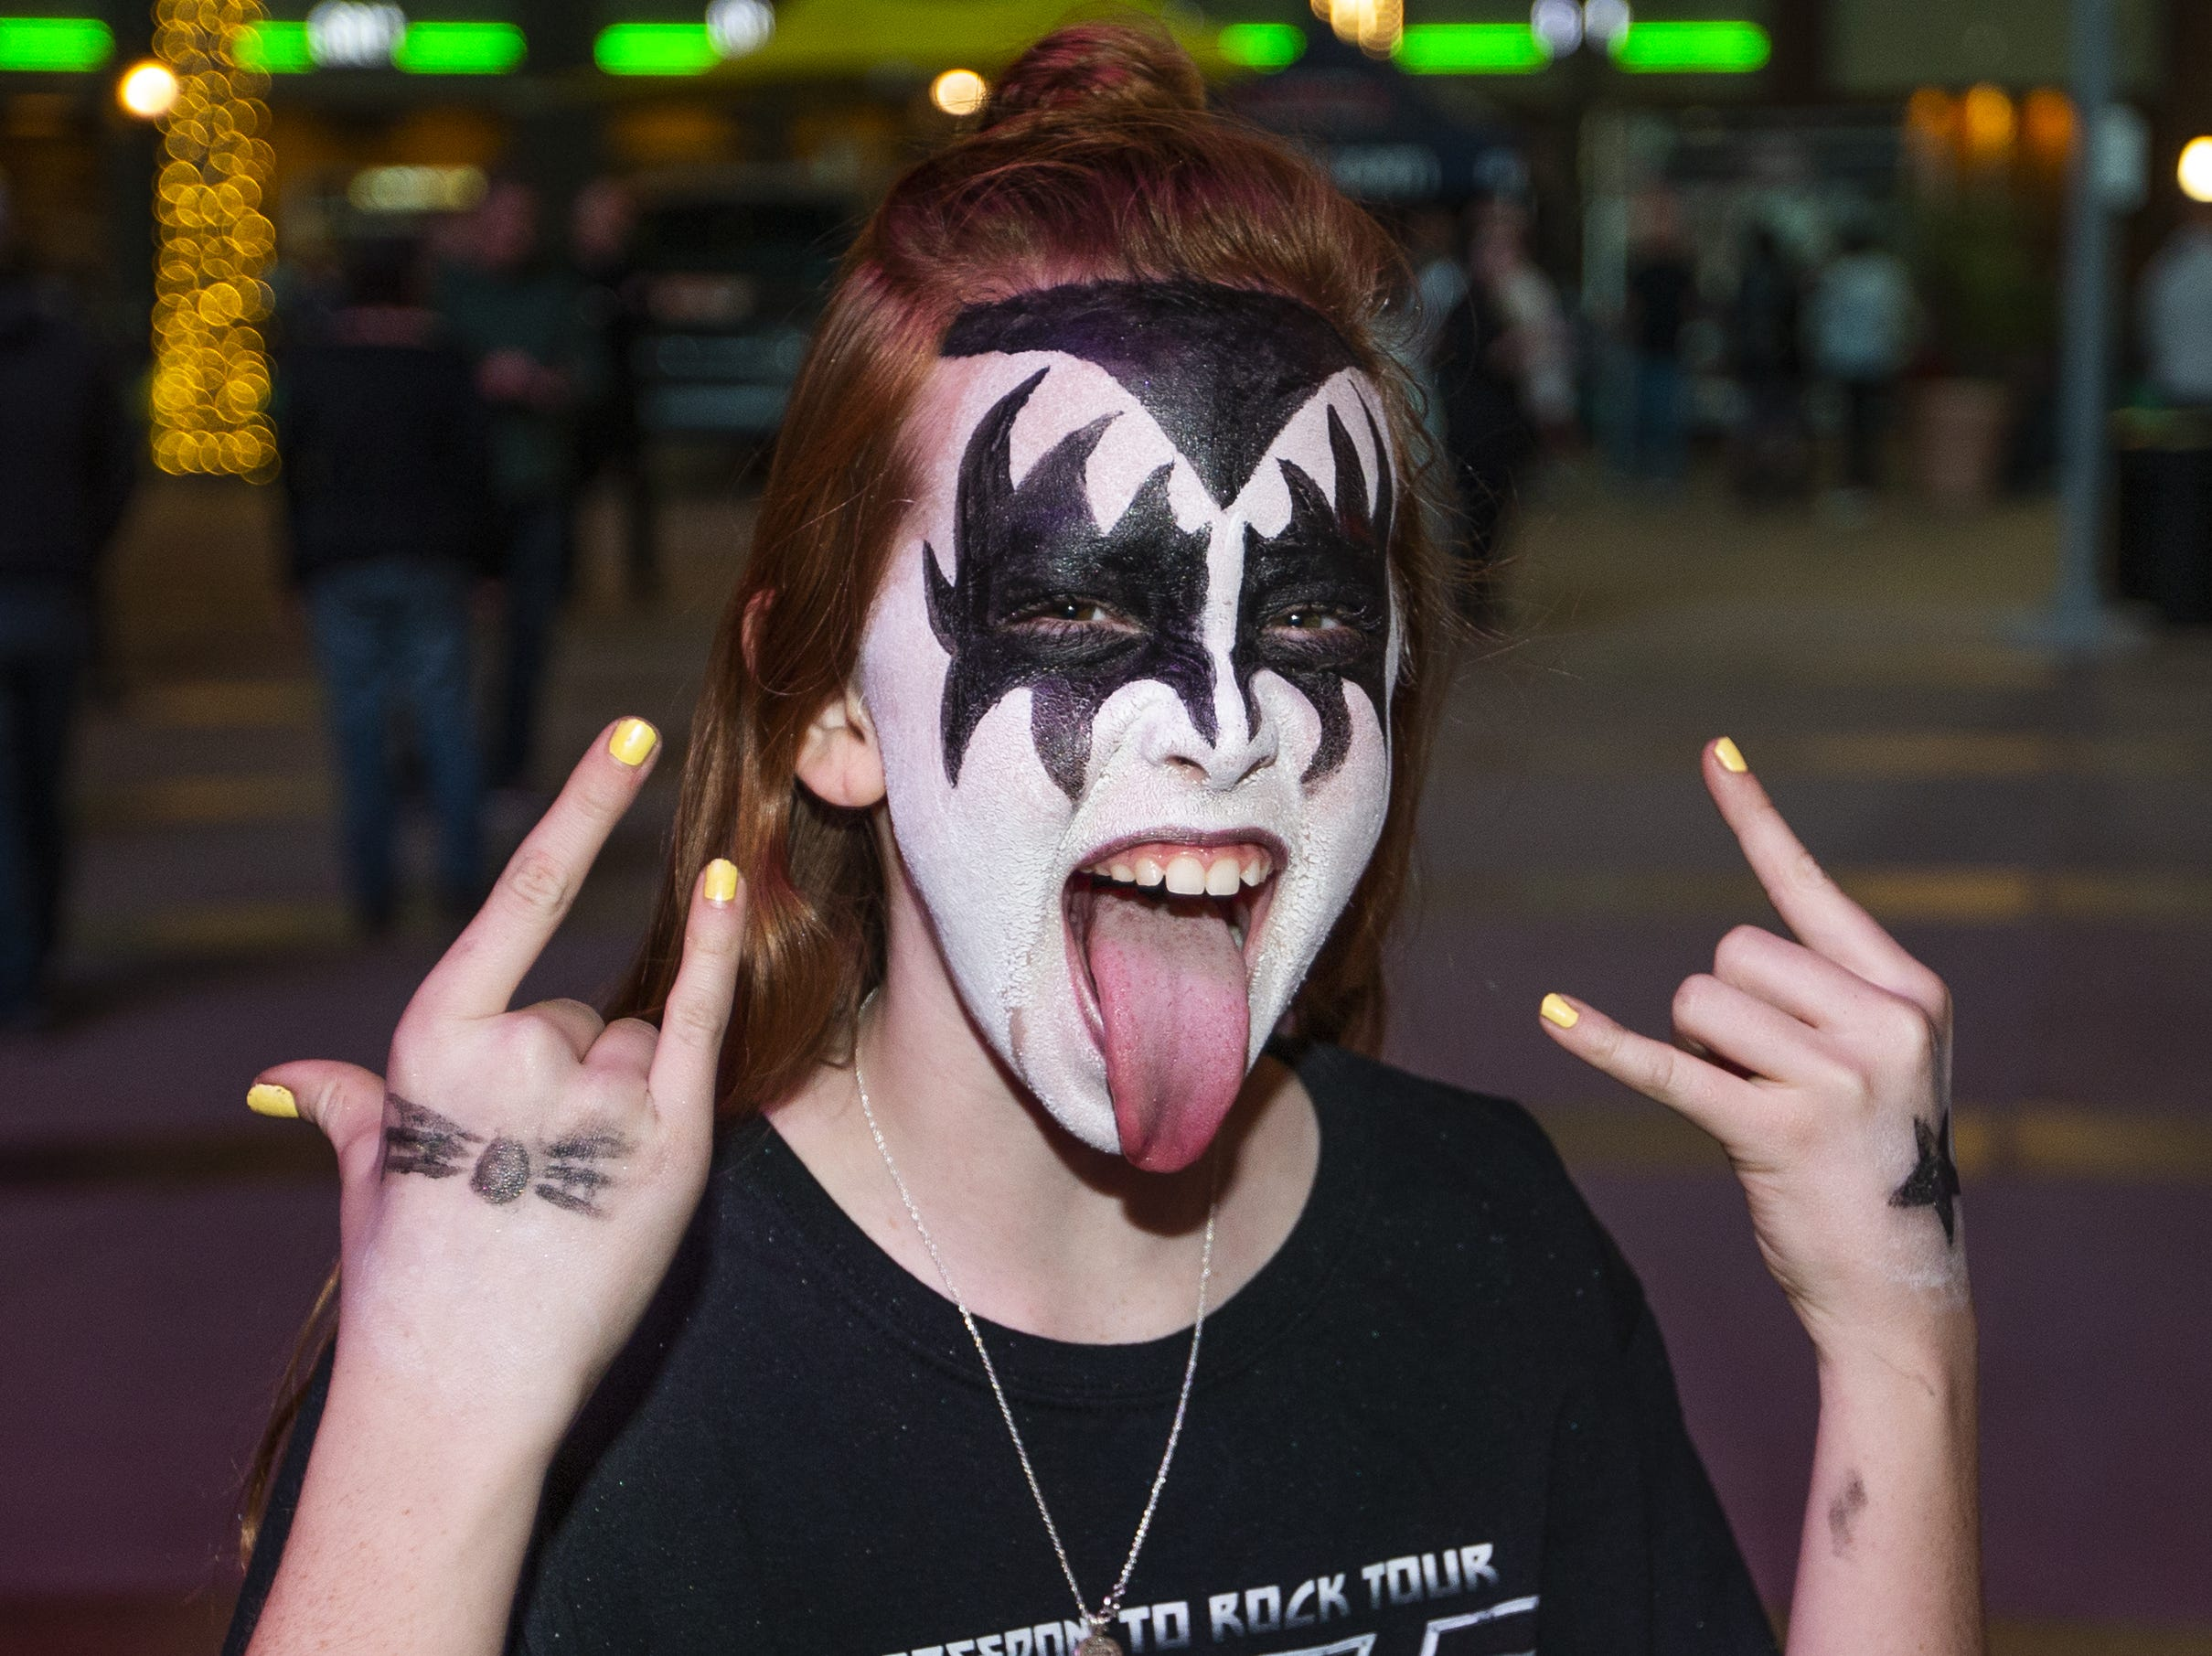 Madison Burgess, 11, of Peoria, shows off her best KISS makeup prior to the concert by the famed group at Gila River Arena in Glendale on Wednesday, Feb. 13, 2019.  The concert was part of the End of the Road World Tour, the band's farewell to the fans.